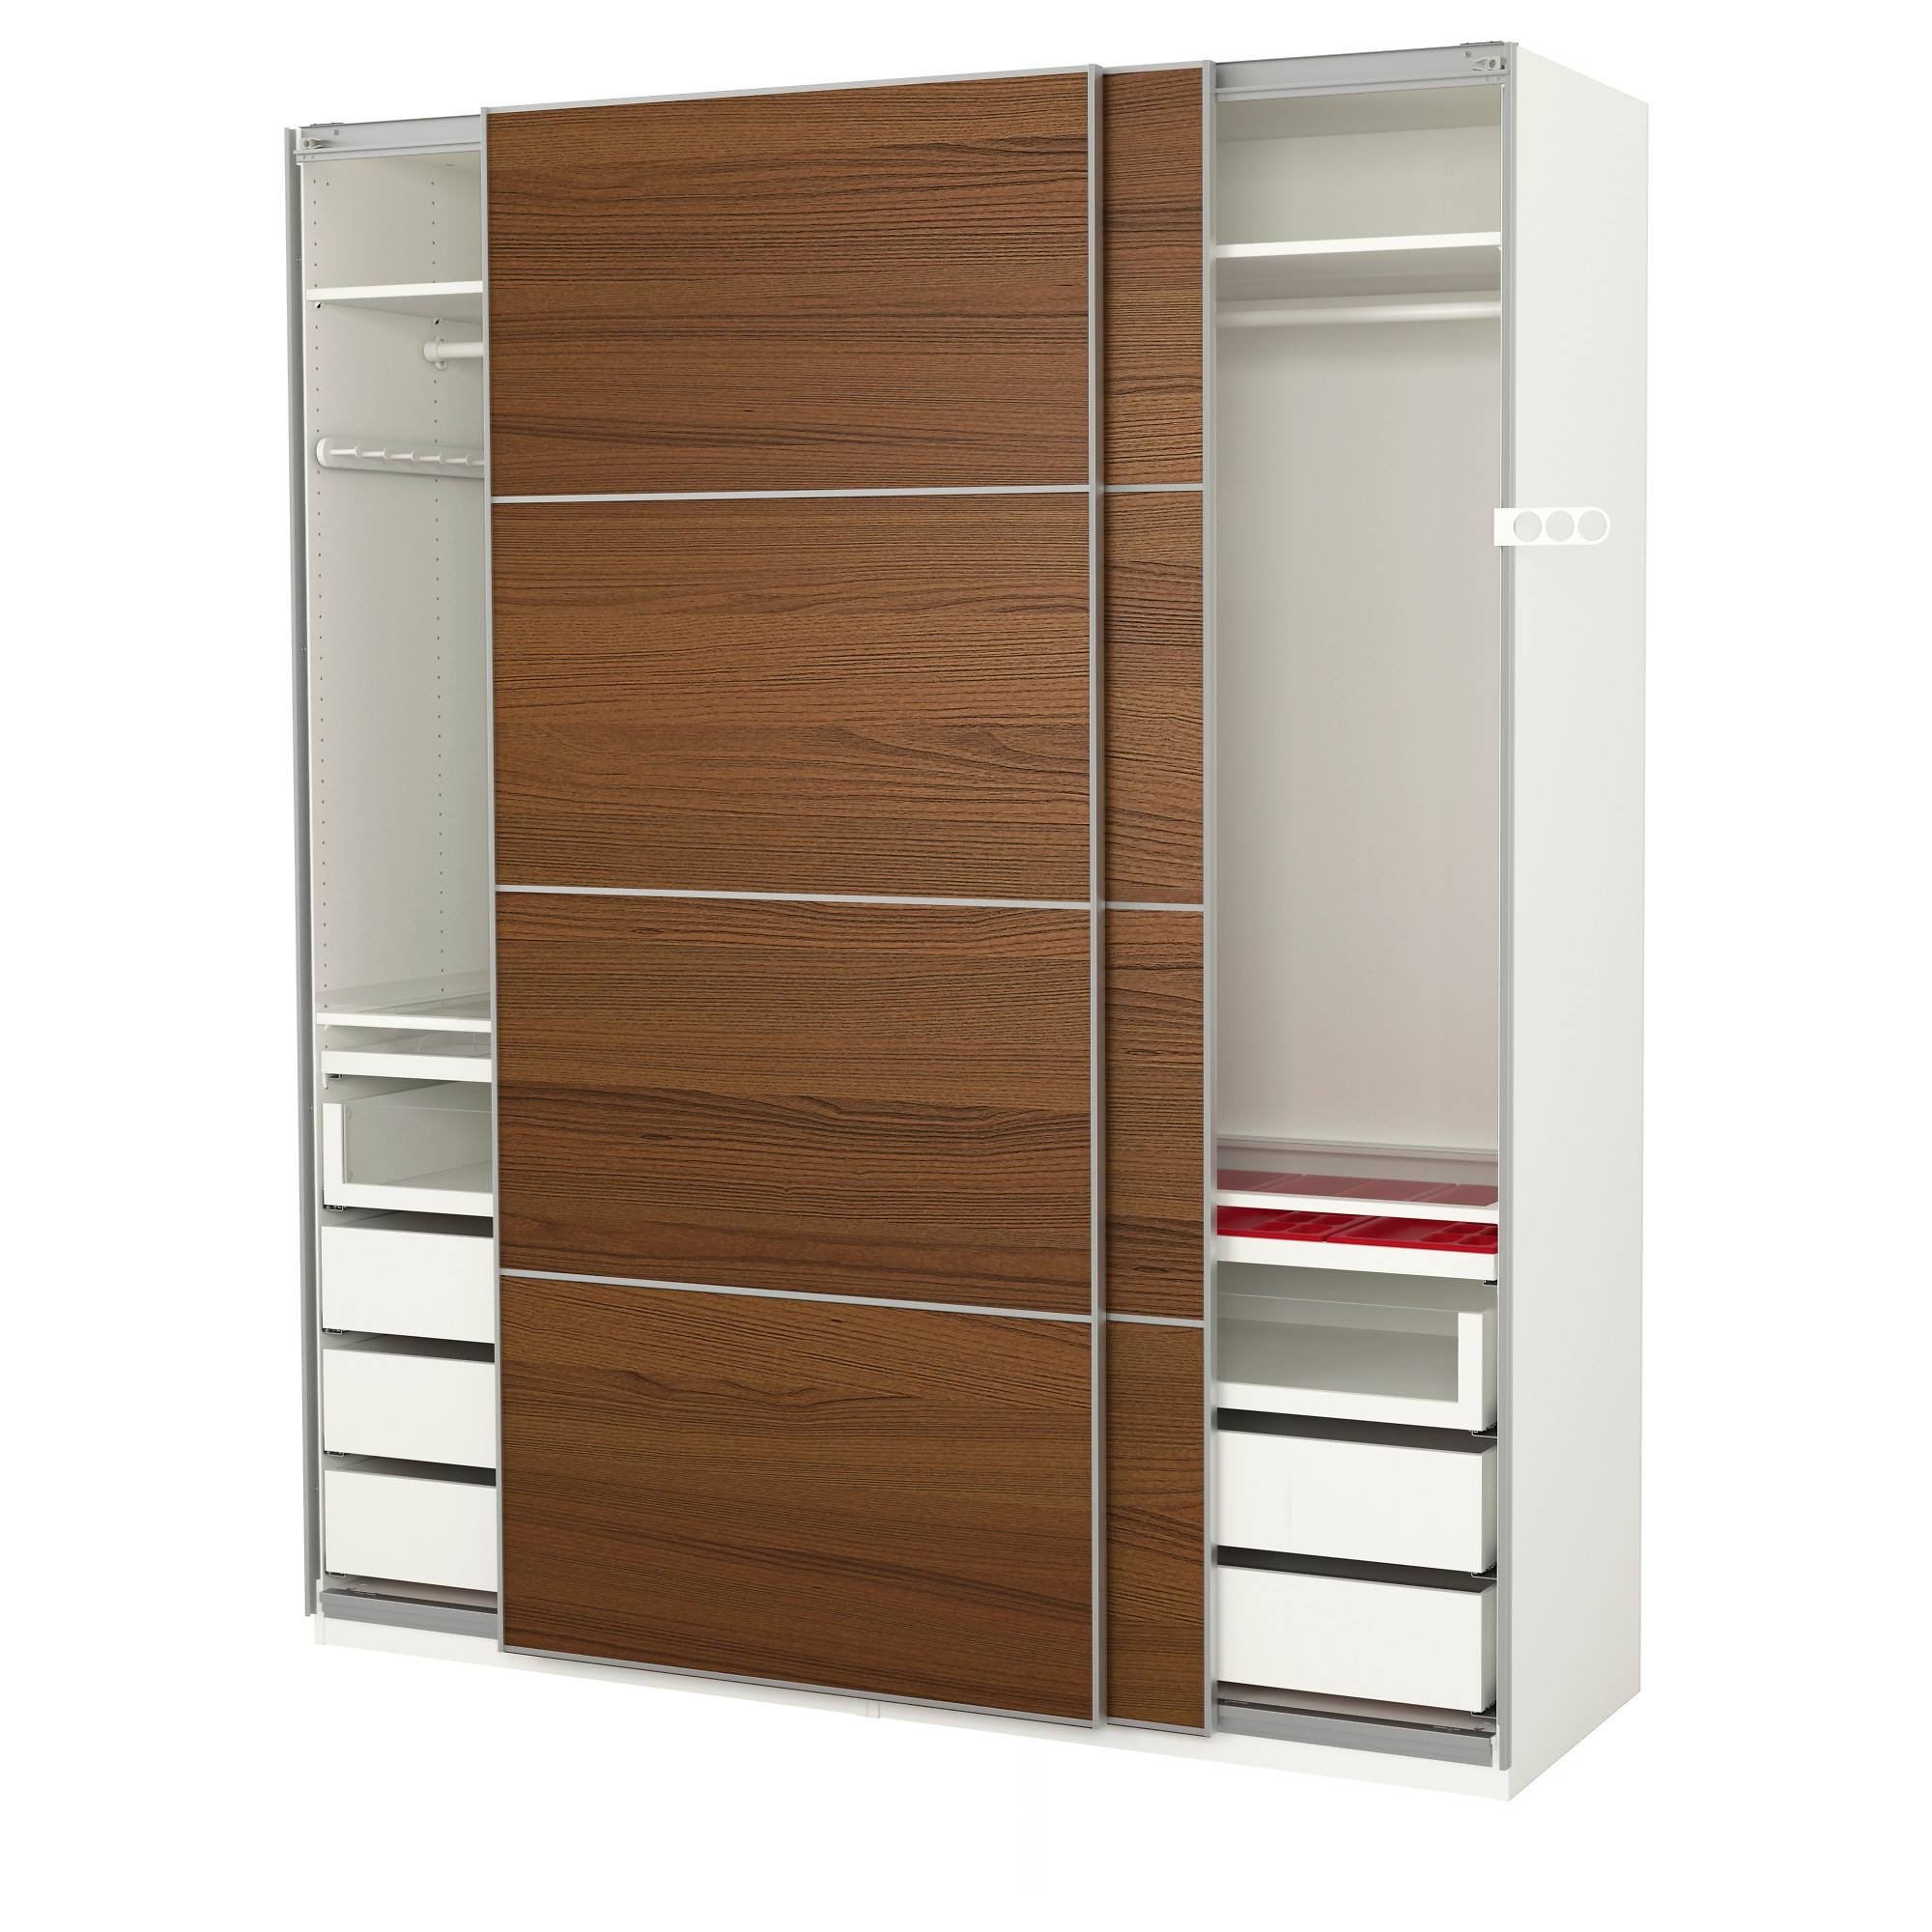 Wardrobes - Pax System - Ikea throughout Wardrobes With Shelves And Drawers (Image 24 of 30)